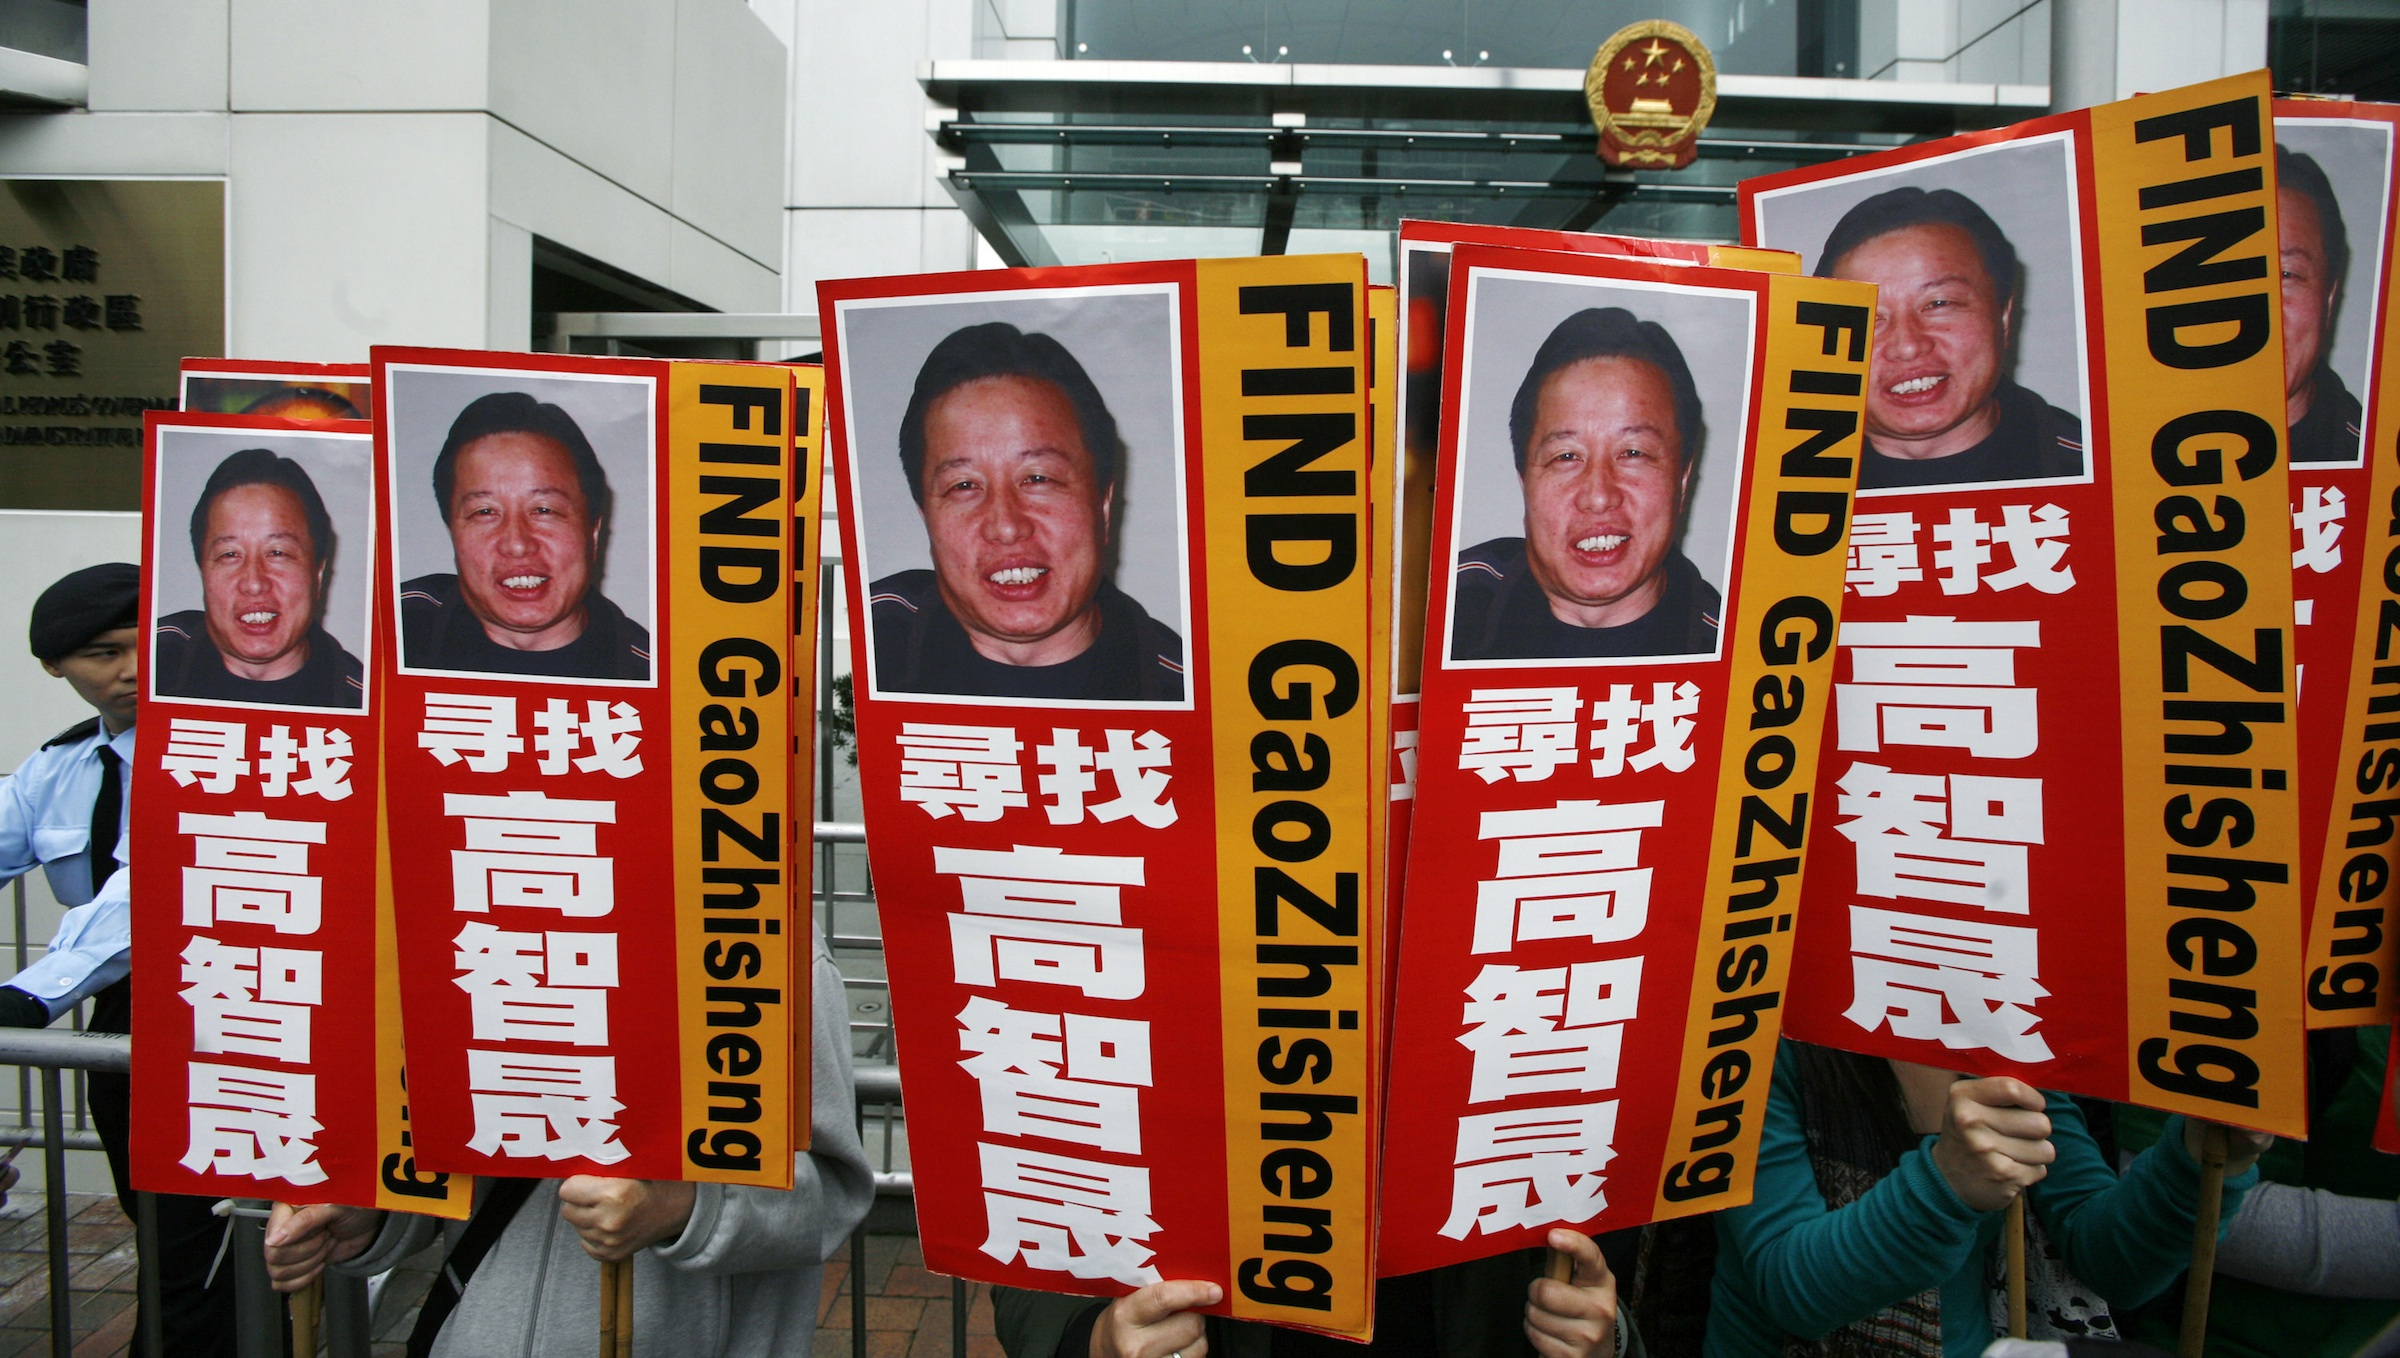 "A policeman stands guard as protesters carrying portraits of one of China's most prominent dissidents, Gao Zhisheng, demonstrate outside a Chinese liaison office in Hong Kong February 4, 2010. Gao, an outspoken lawyer who took on sensitive cases that riled China's ruling Communist Party, has been missing for one year. Chinese characters read ""Look for Gao Zhisheng"".   REUTERS/Bobby Yip  (CHINA - Tags: CIVIL UNREST POLITICS) - RTR29T9Z"